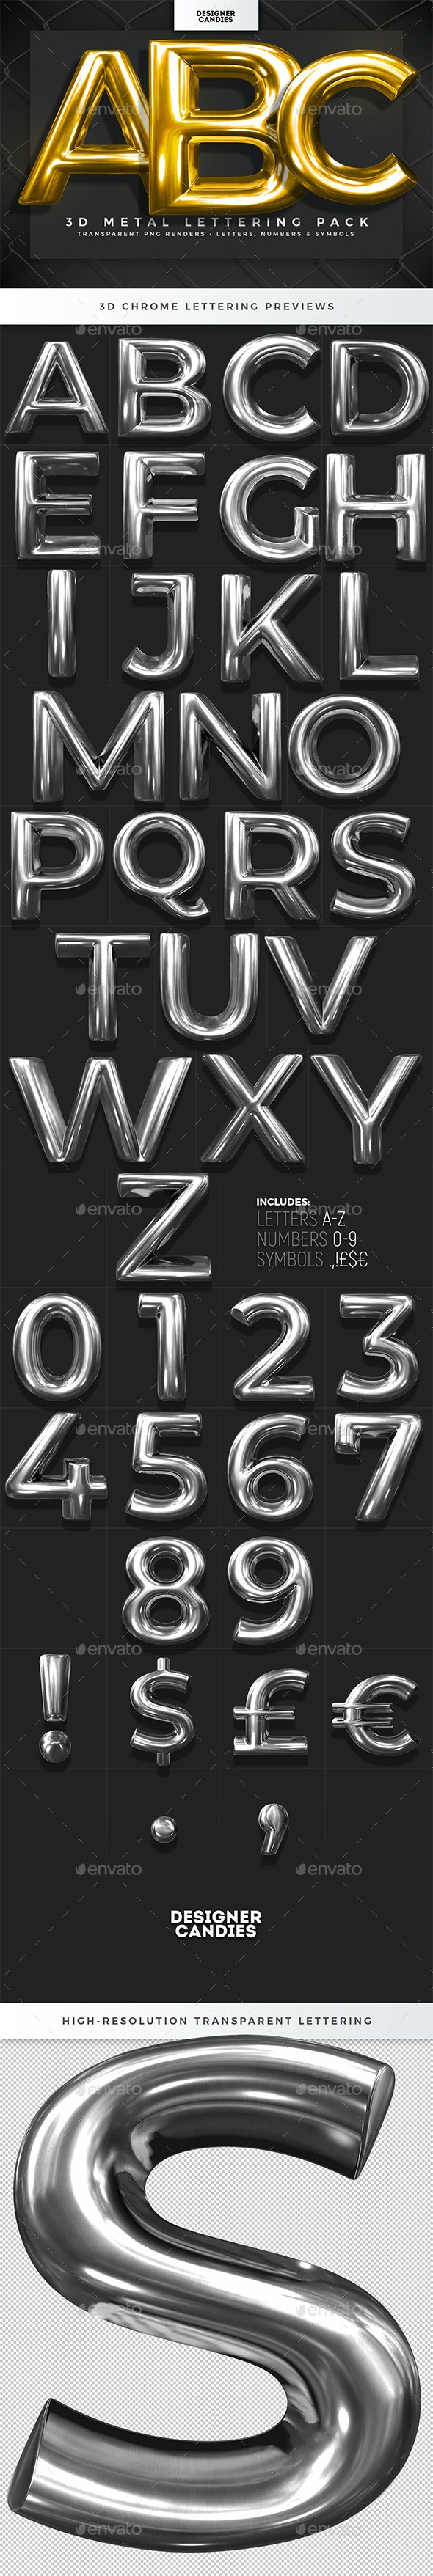 3D Metal Lettering Pack - Text 3D Renders